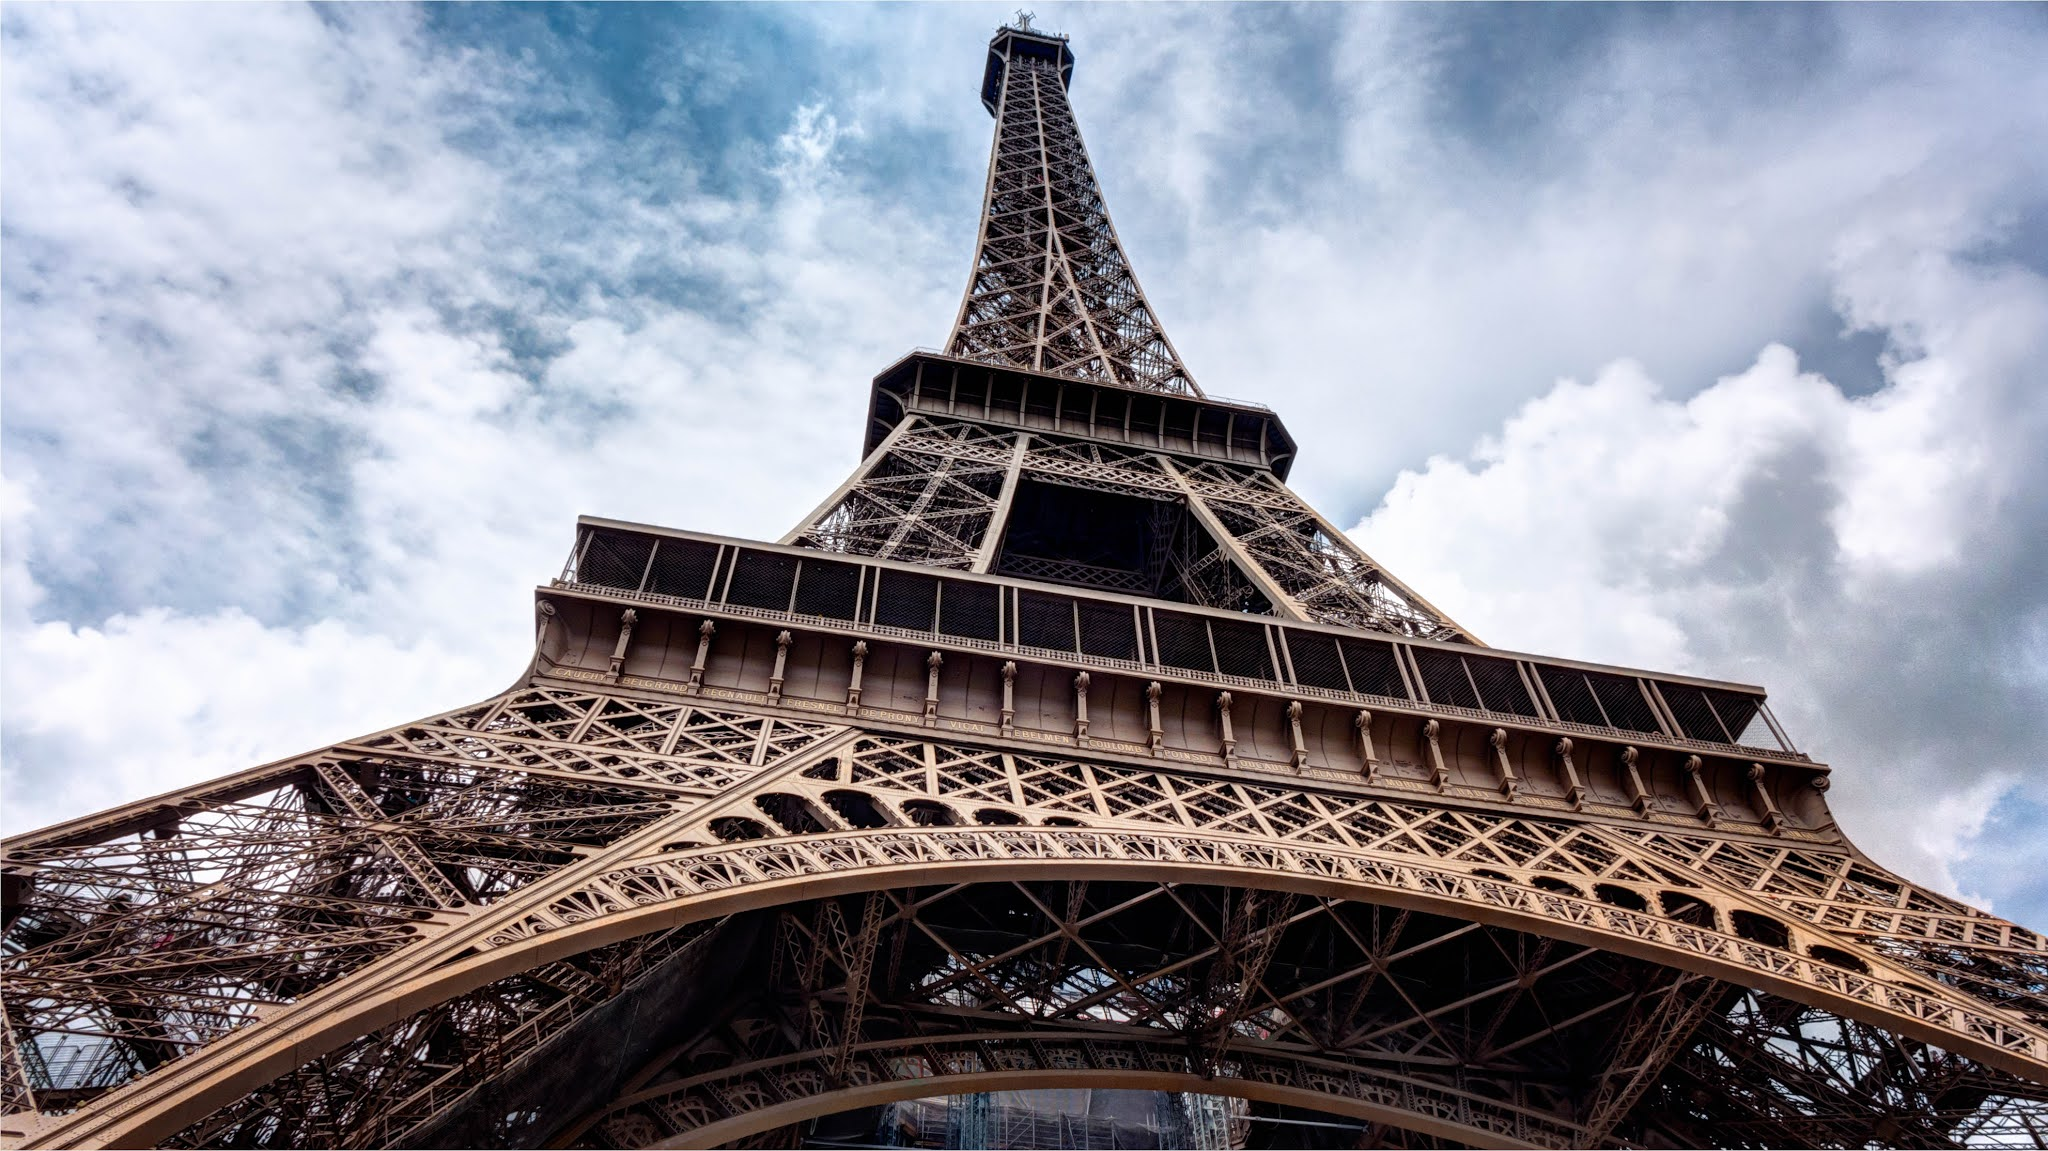 Top 5 Interesting Facts You Should Know About The Eiffel Tower